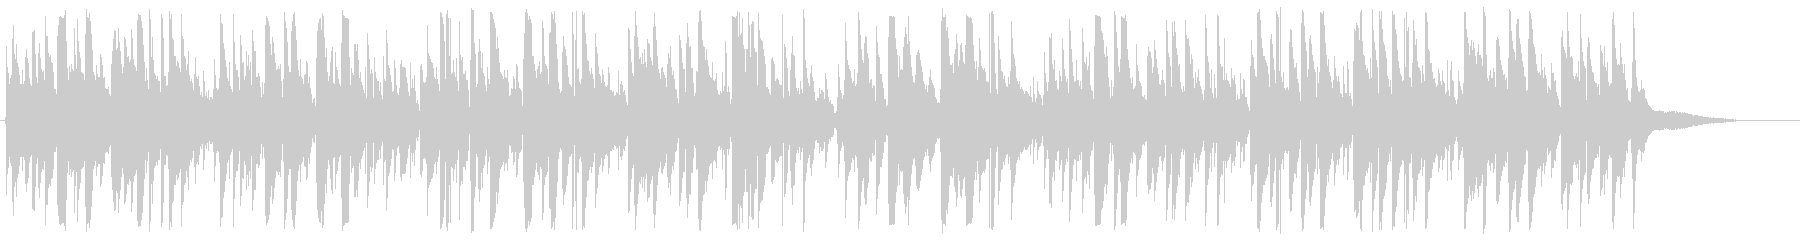 Acoustic guitar reminiscent of a warm family's unreproduced waveform